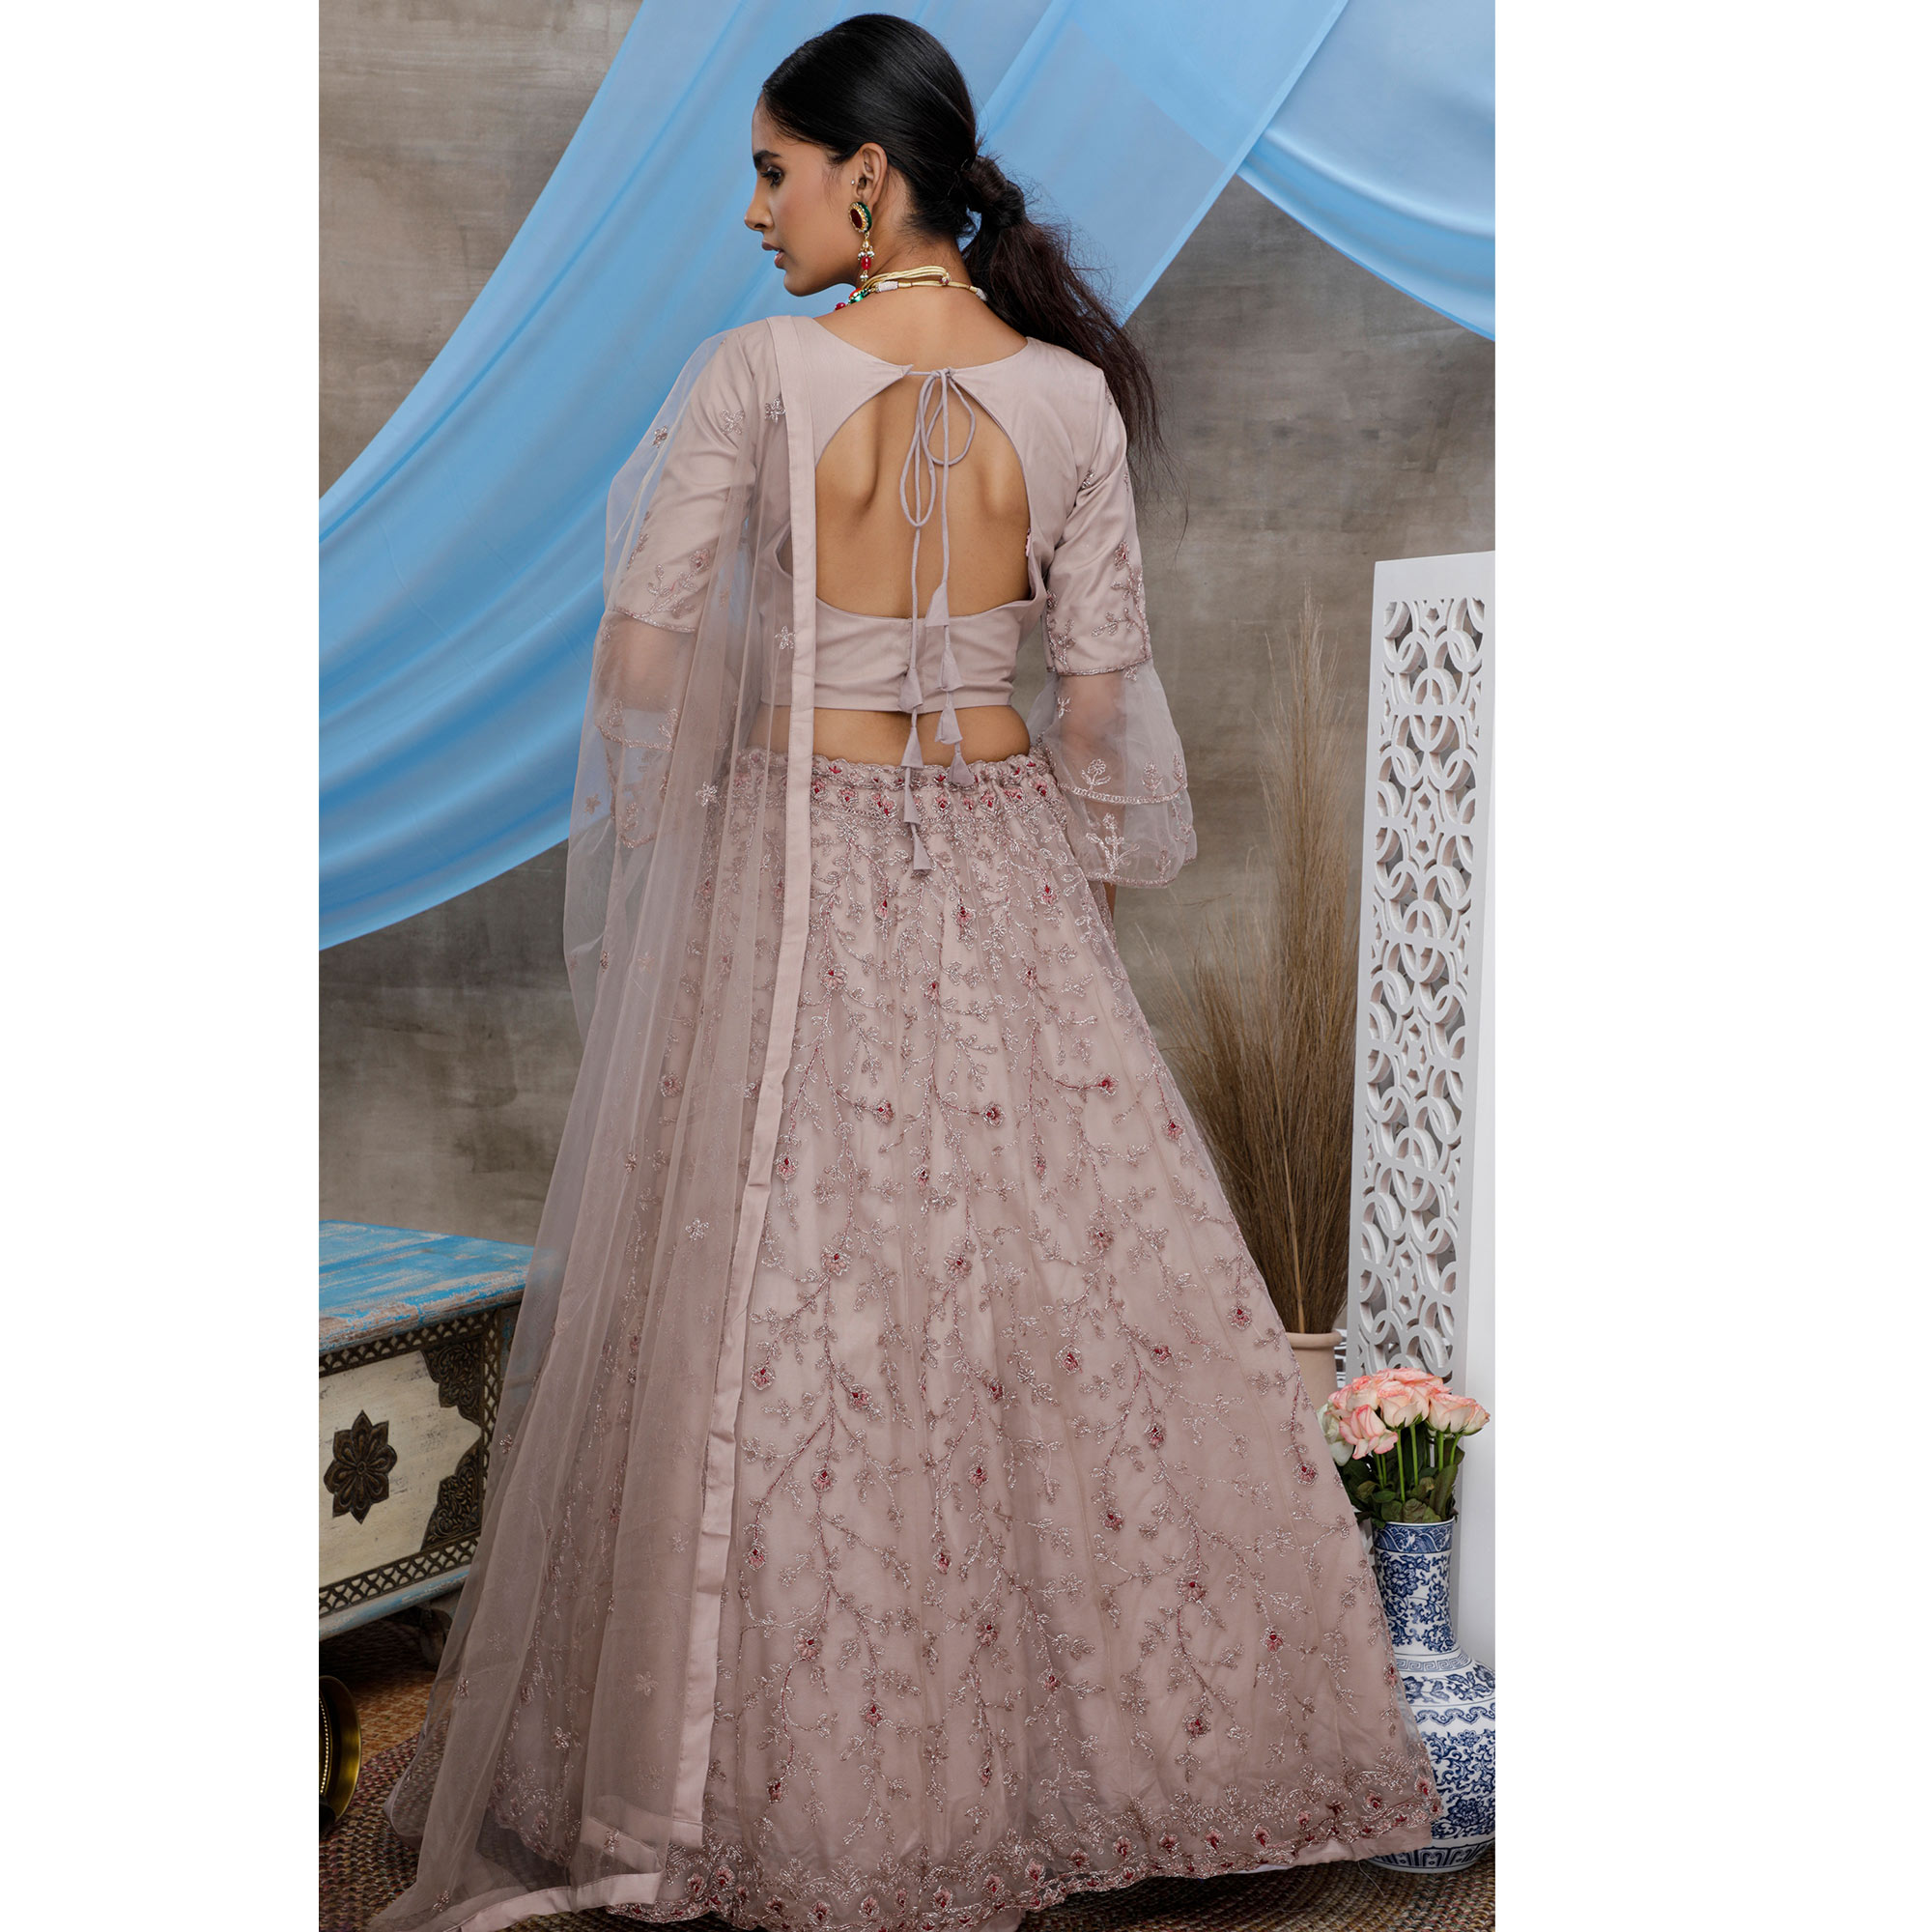 Engrossing Dusty Purple Colored Party Wear Heavy Embroidered Net Lehenga Choli